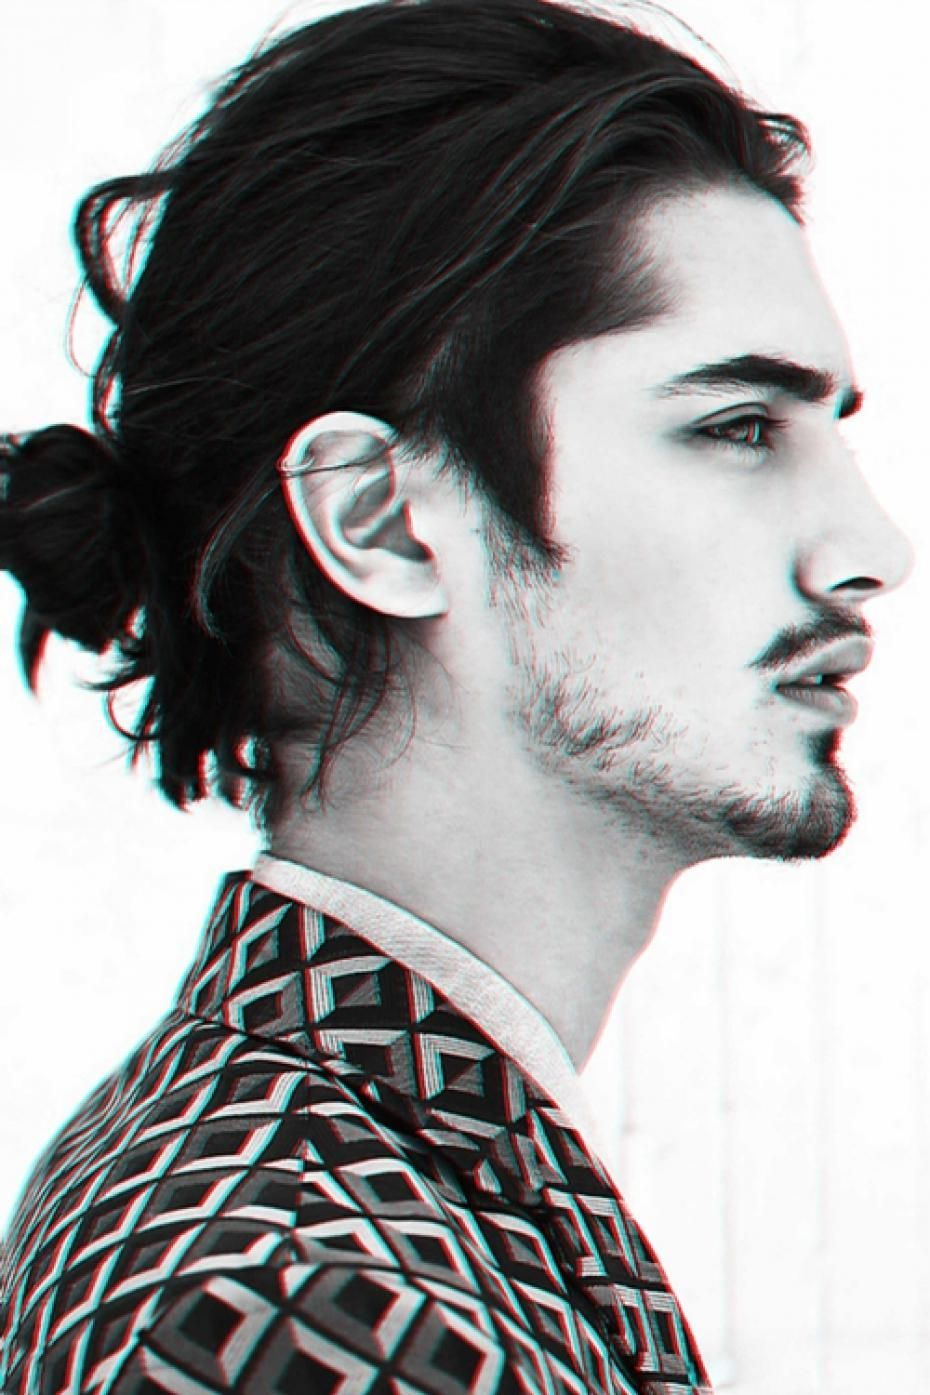 Sidecut Mann Coupe Homme Chignon He Is So Fashion In 2019 Man Bun Styles